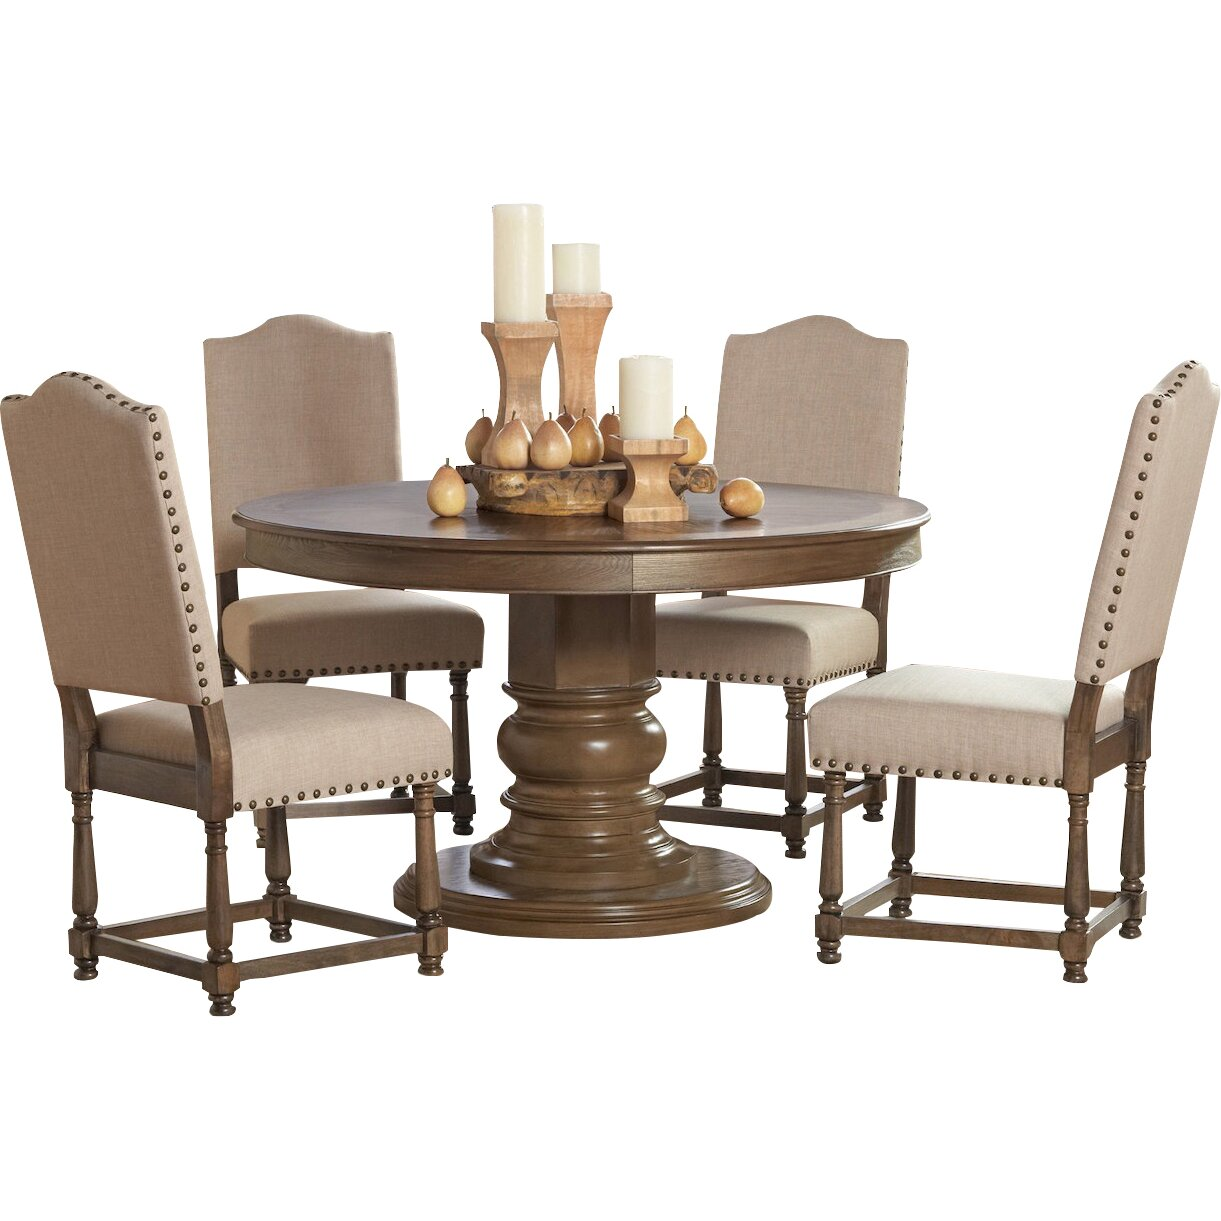 Infini furnishings 5 piece dining set reviews wayfair for 5 piece dining set